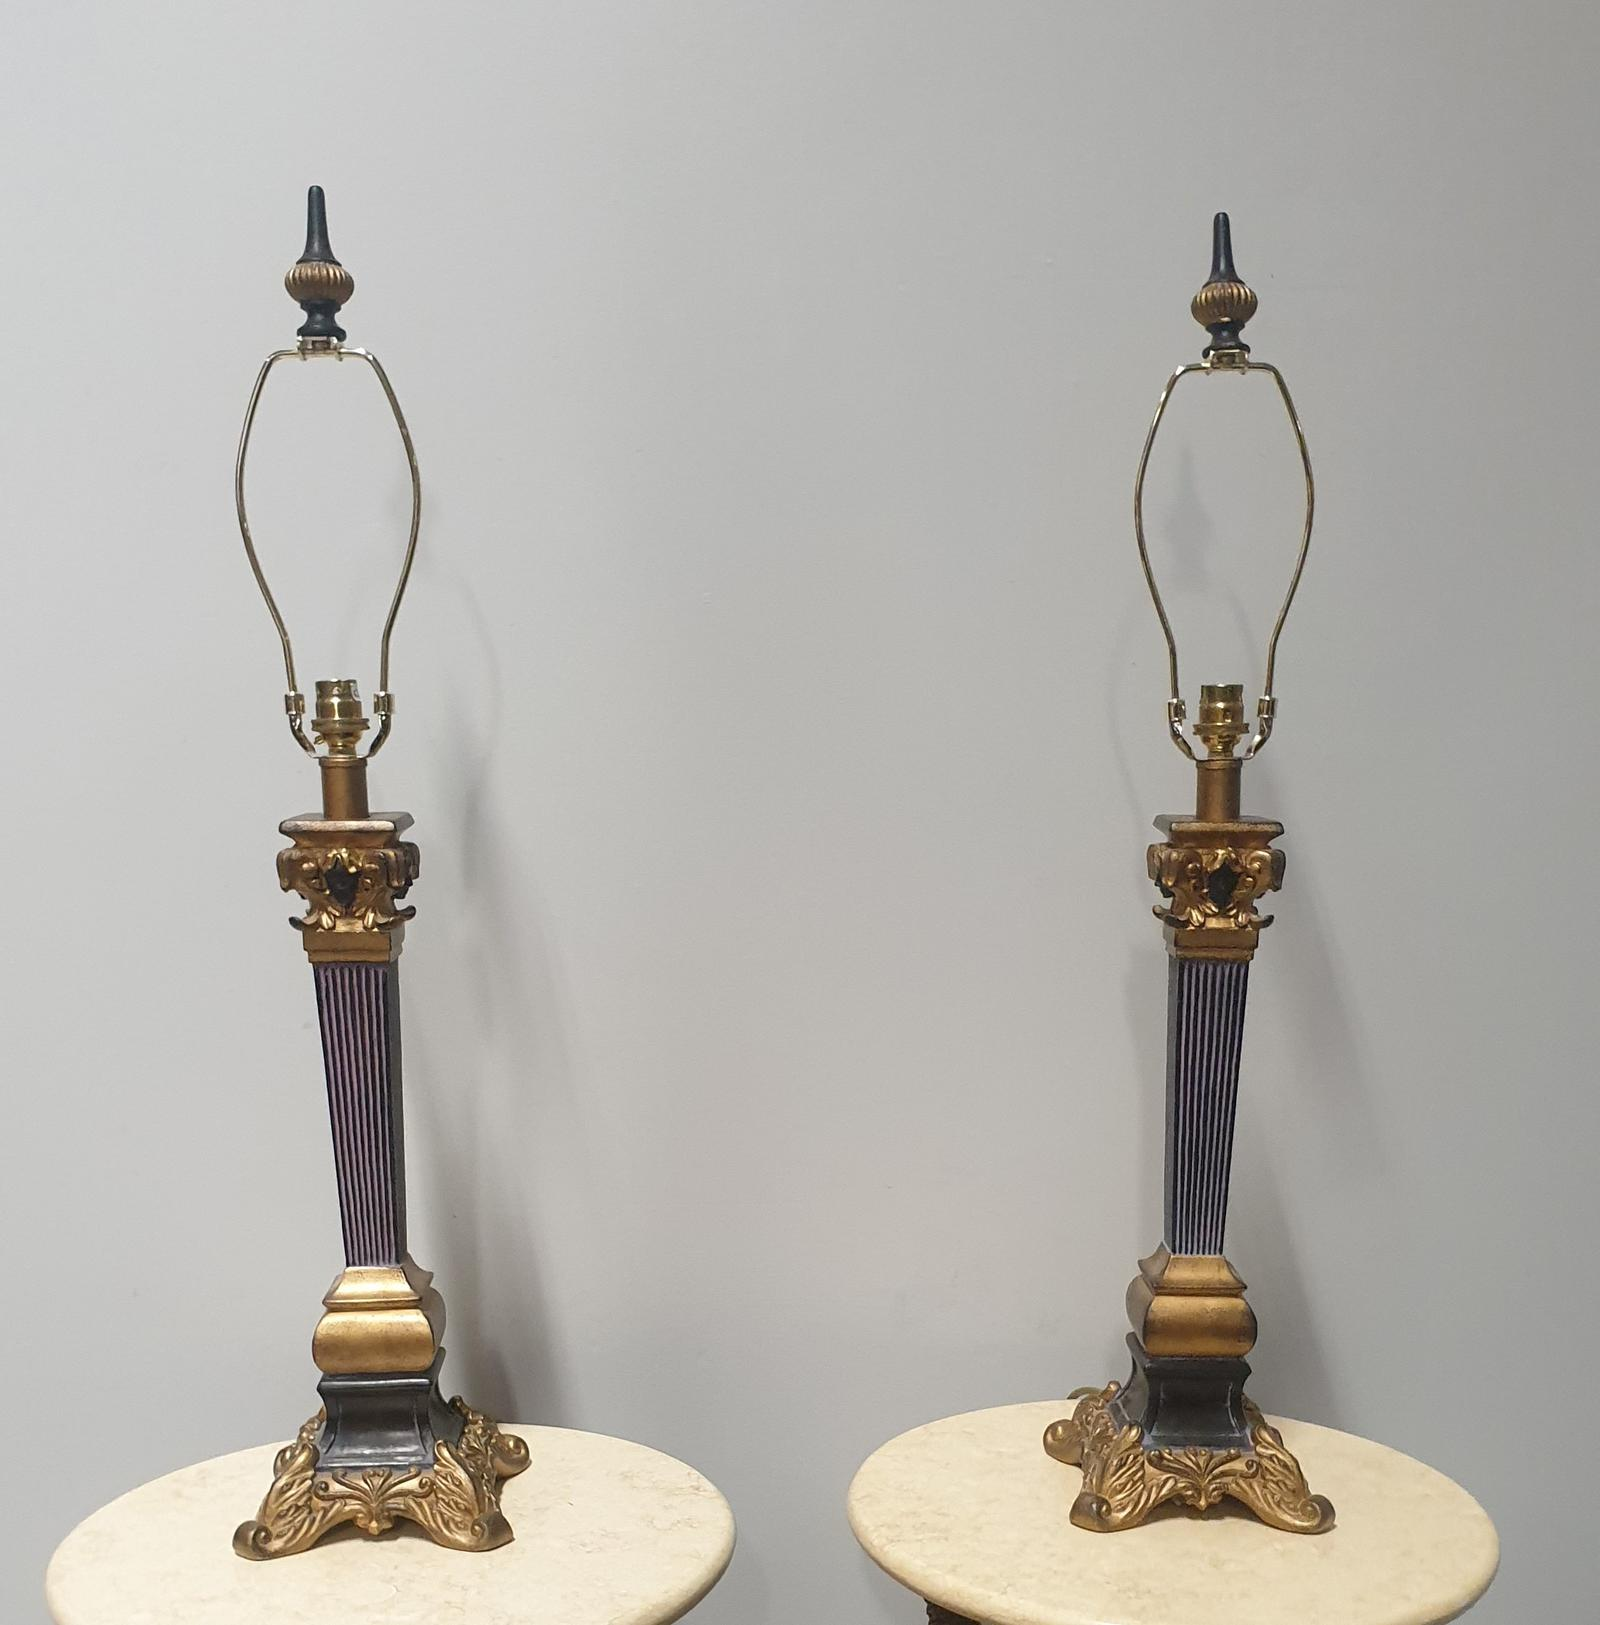 Nice Pair of Column Table Lamps (1 of 1)